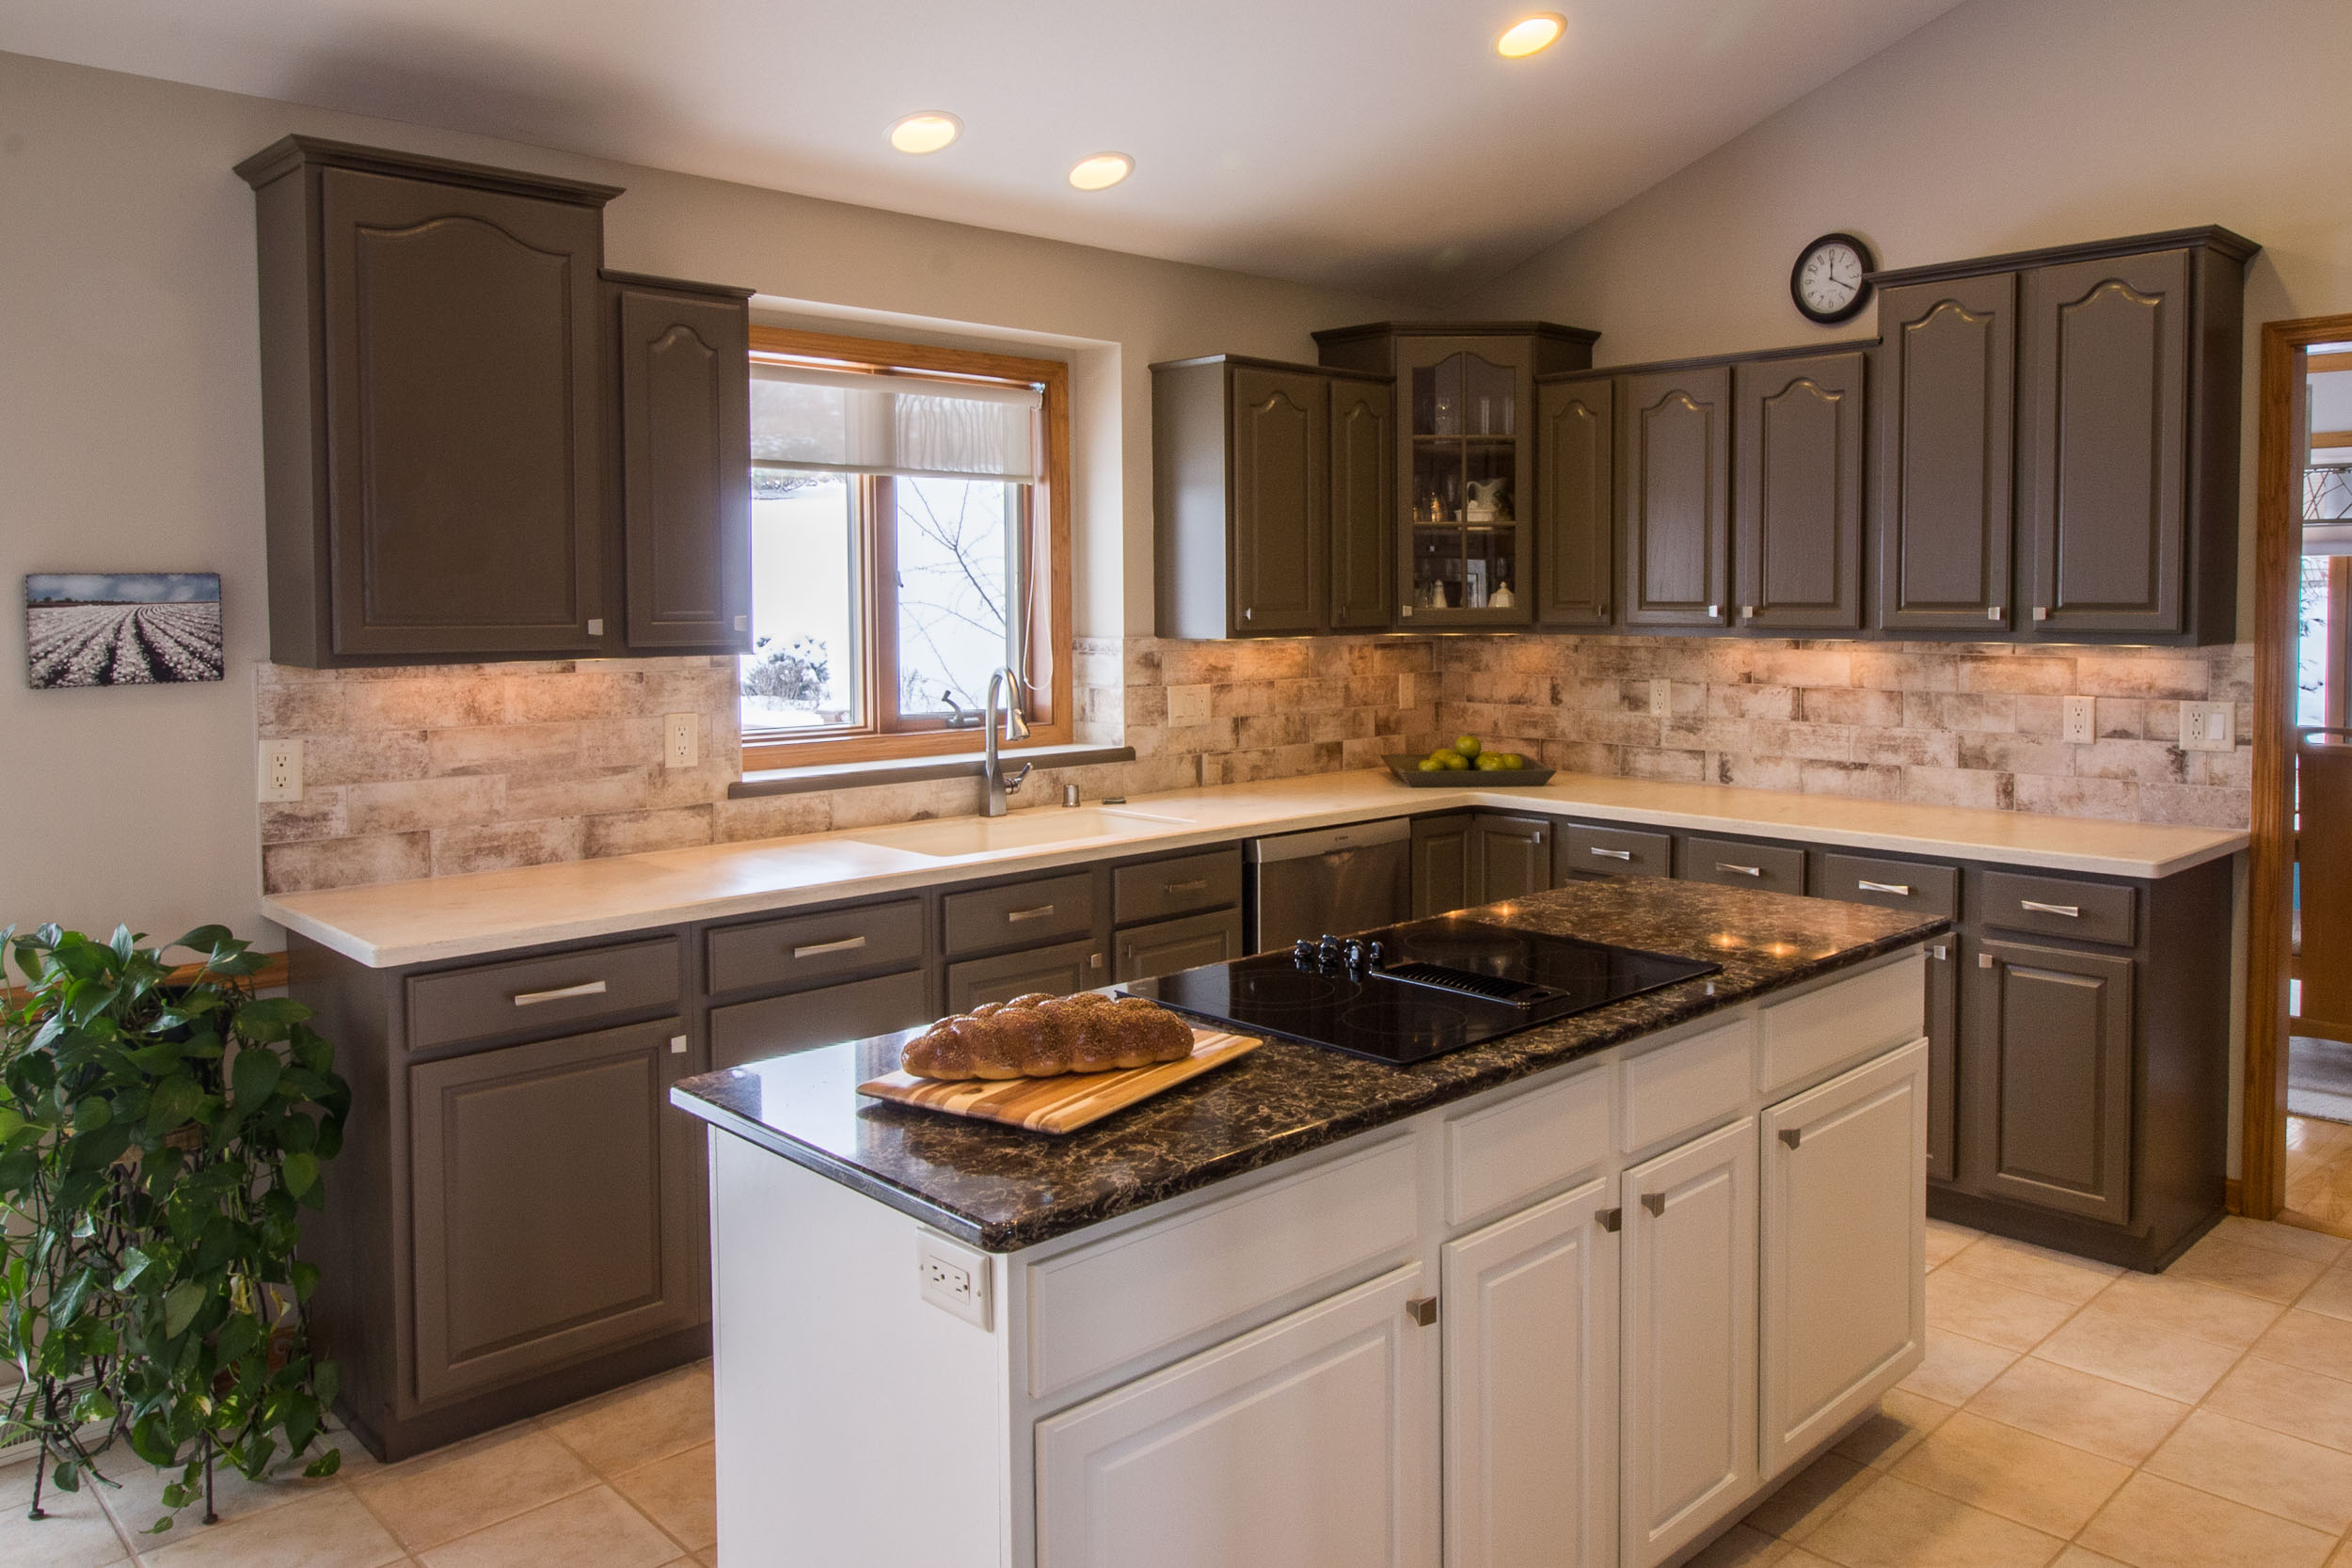 Kitchen Design and Whole House Renovation